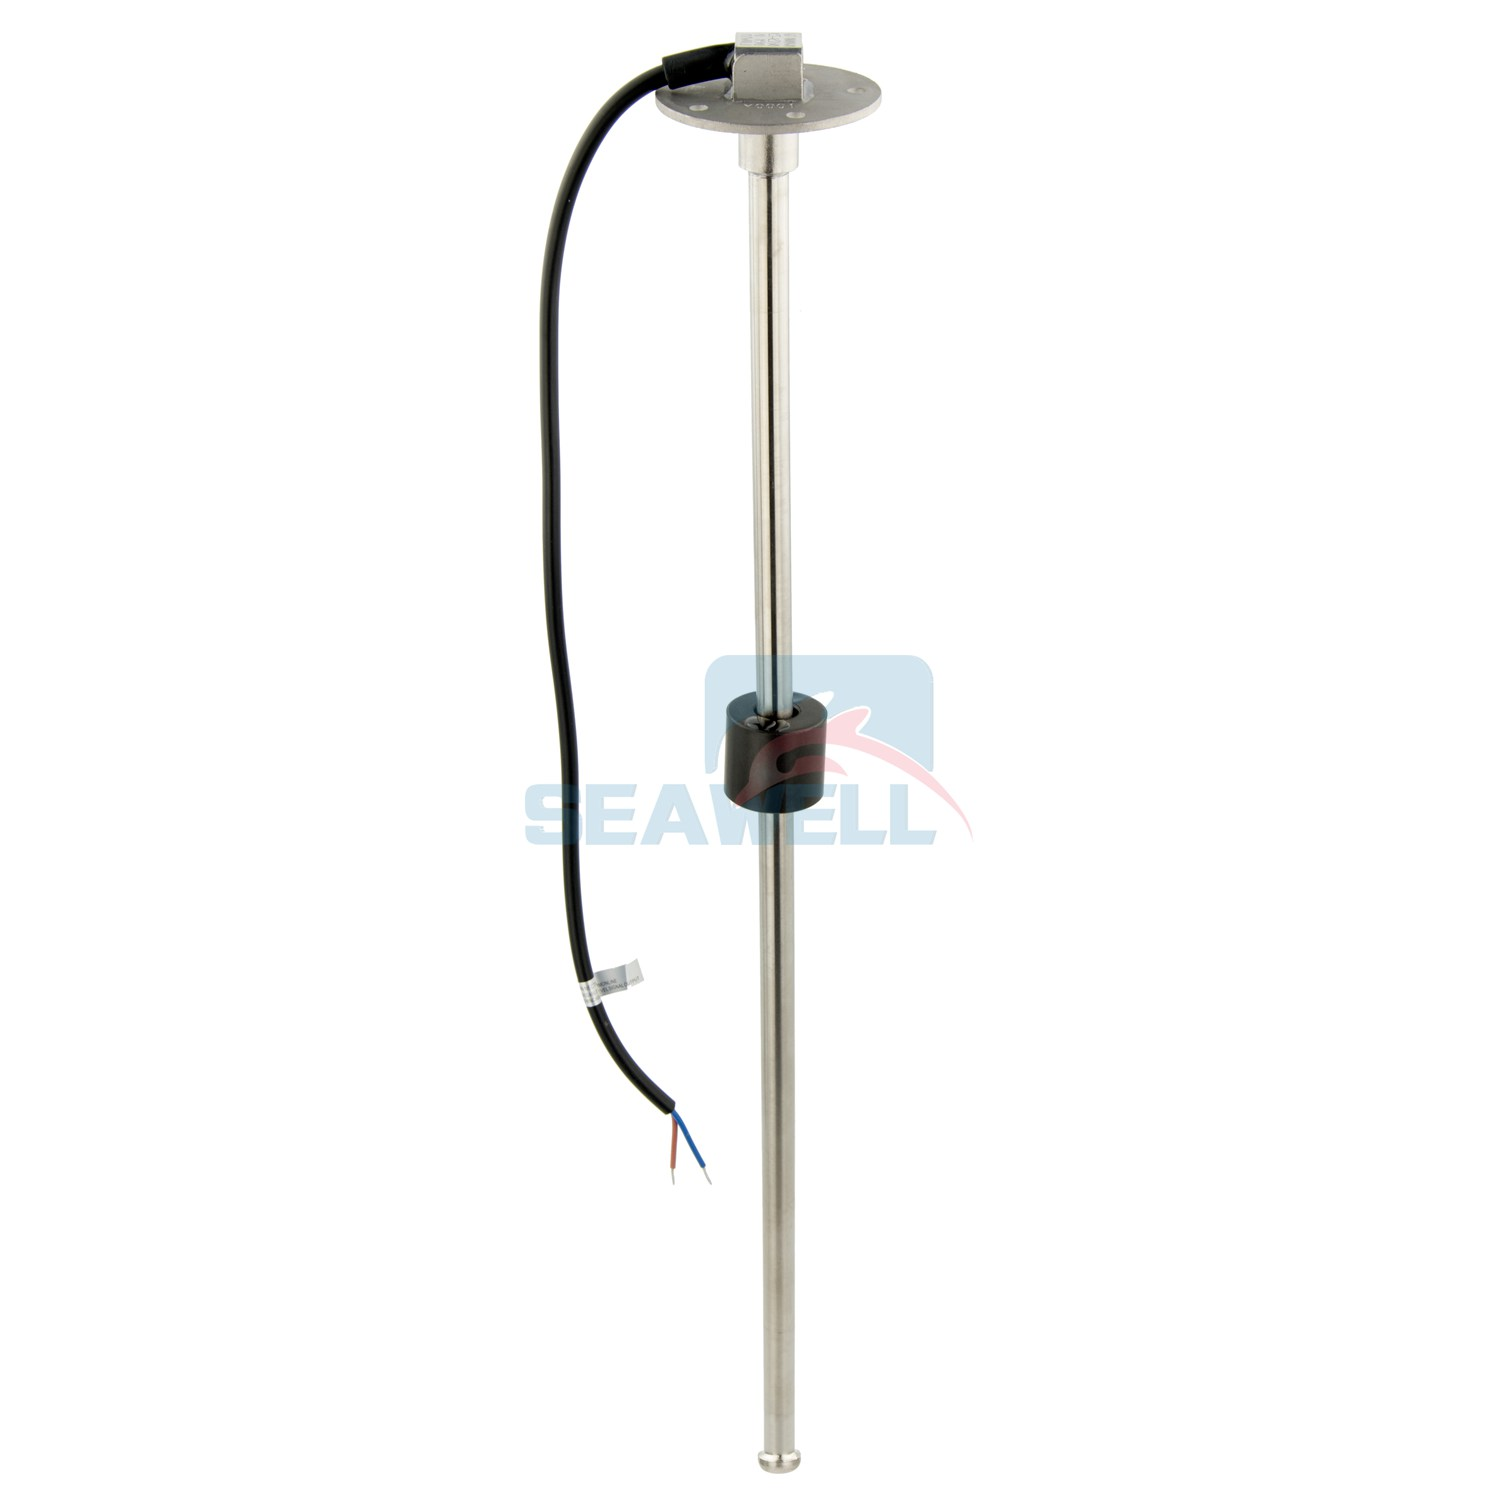 Boat Car Fuel Sending Unit Marine Water Level Gauge Sensor 240~33ohm 350mm Stainless Steel Fuel Level Sensor 5 holes